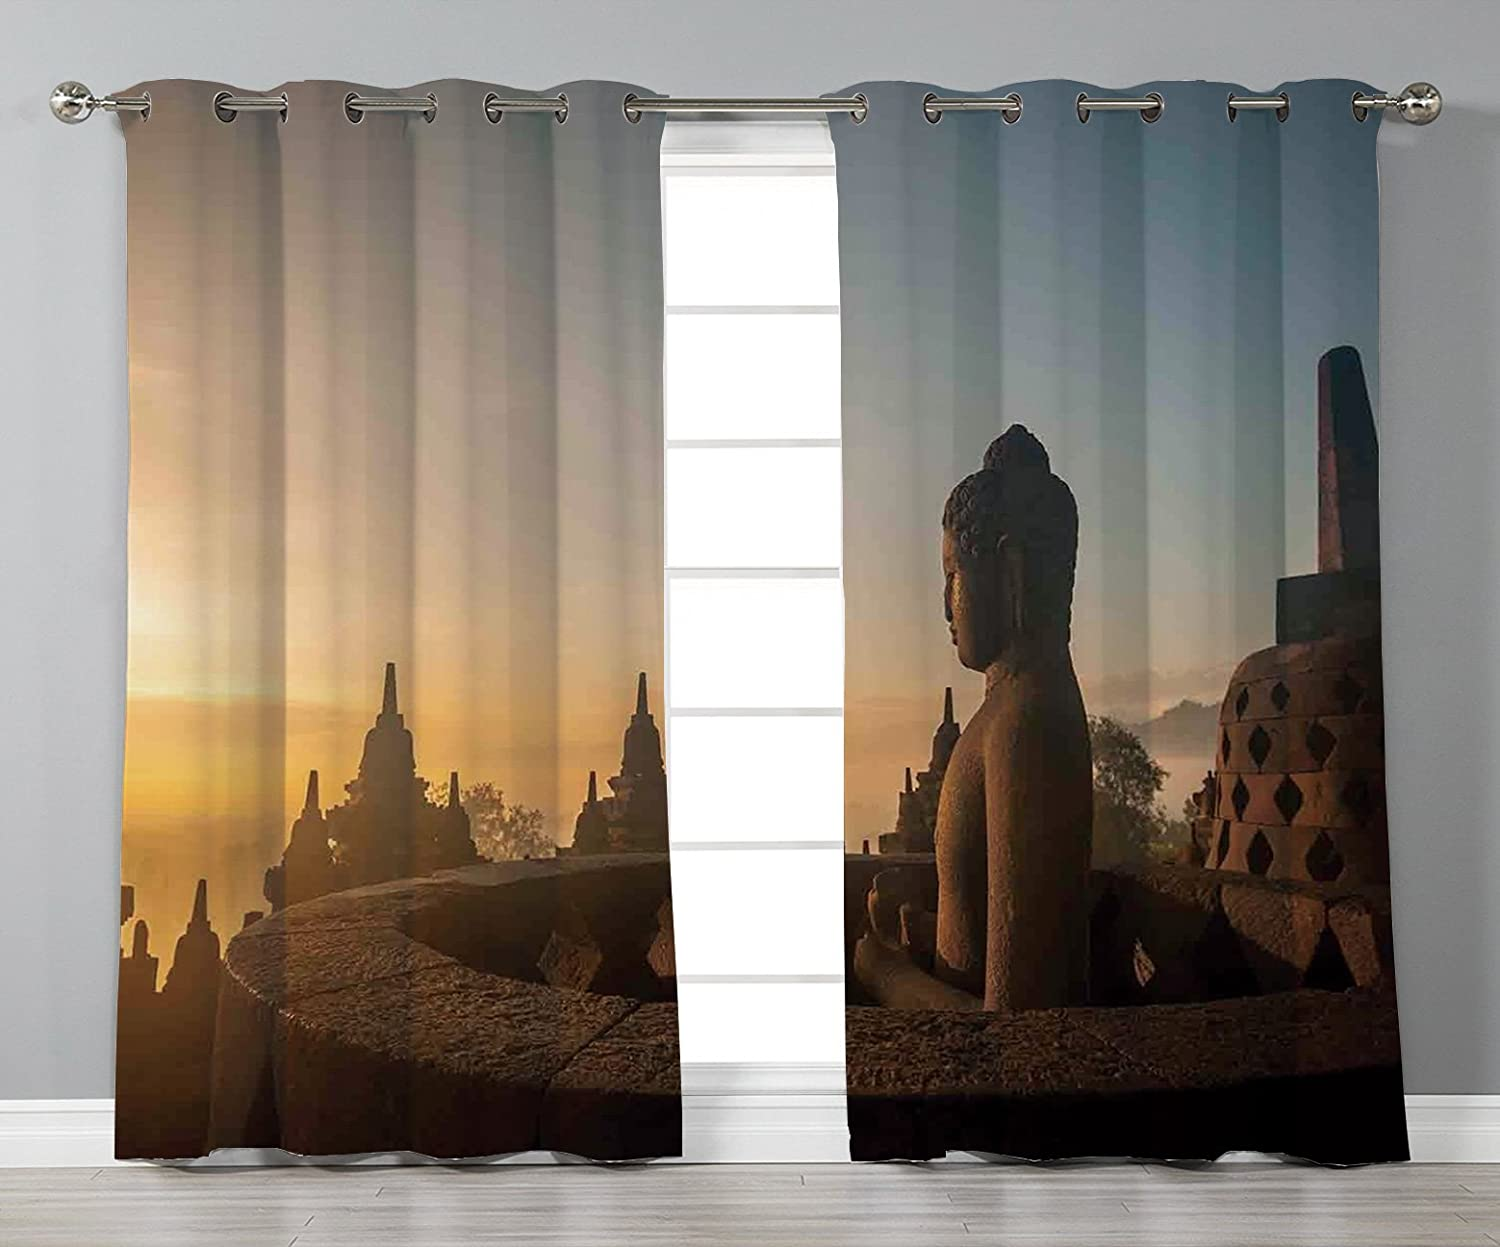 Stylish Window Curtains,Asian Decor,Religious Temple in Indian Sunrise  Ancient Architecture Mystic Style Ceremony Picture Wall Art,Multi,2 Panel  Set Window ...